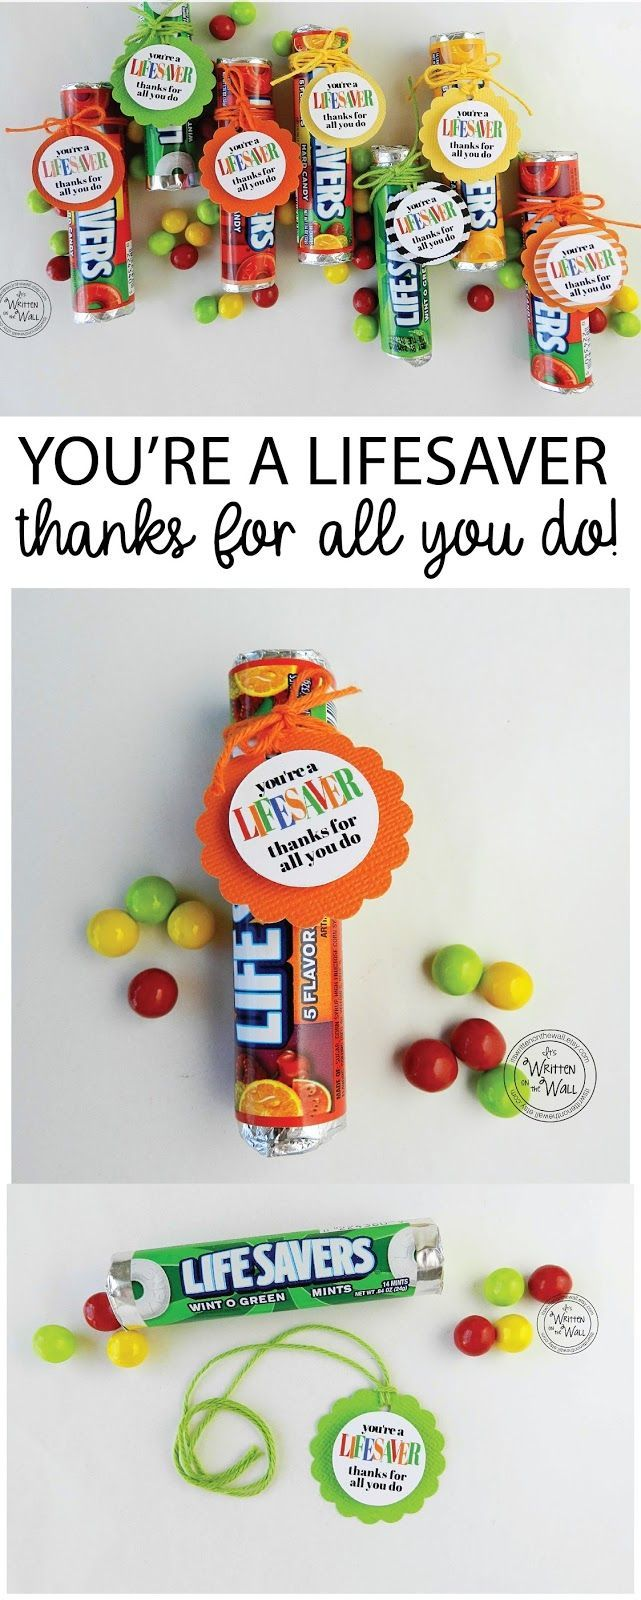 Teacher Appreciation Nurse appreciation Employee Recognition Thank you gifts, You're a Lifesaver, Thanks for all you do Tags Lifesaver candy